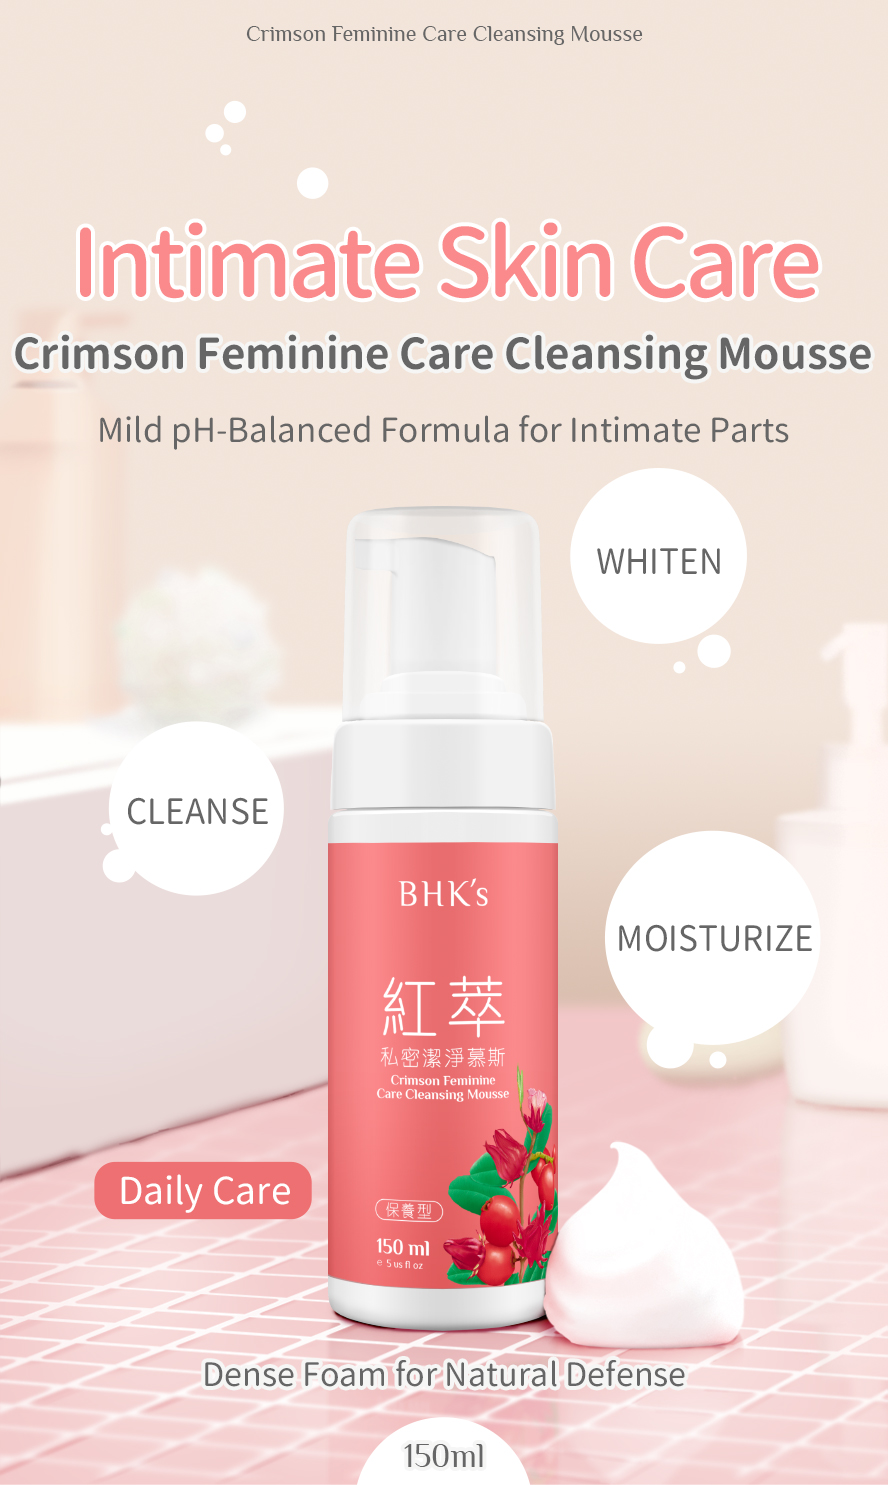 BHK's crimson feminine care cleansing mousse promotes the growths of probiotics in the intimate area,gently cleanses without drying effect.